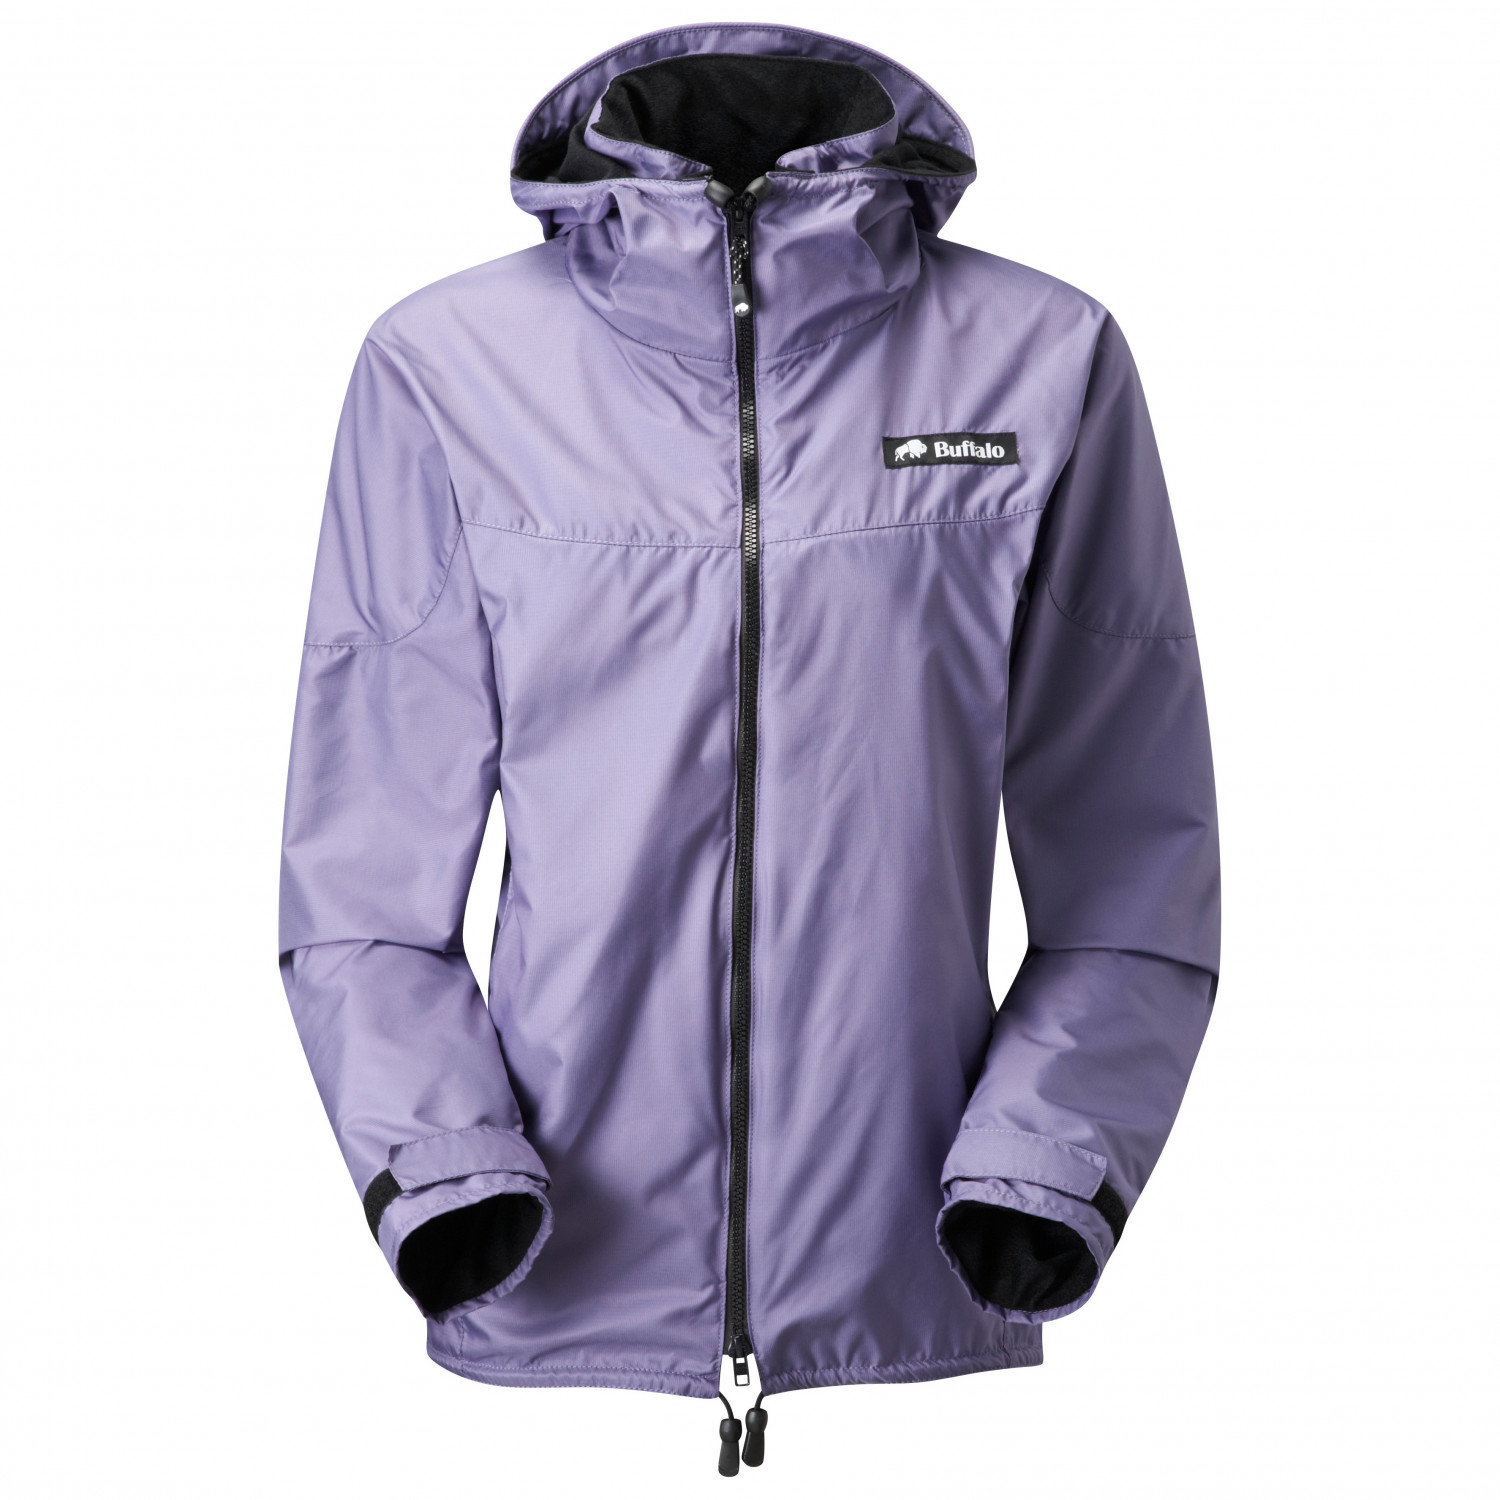 competitive price aeade 2825f Buffalo - Women's Fell Jacket - Softshell jacket - Mauve | M